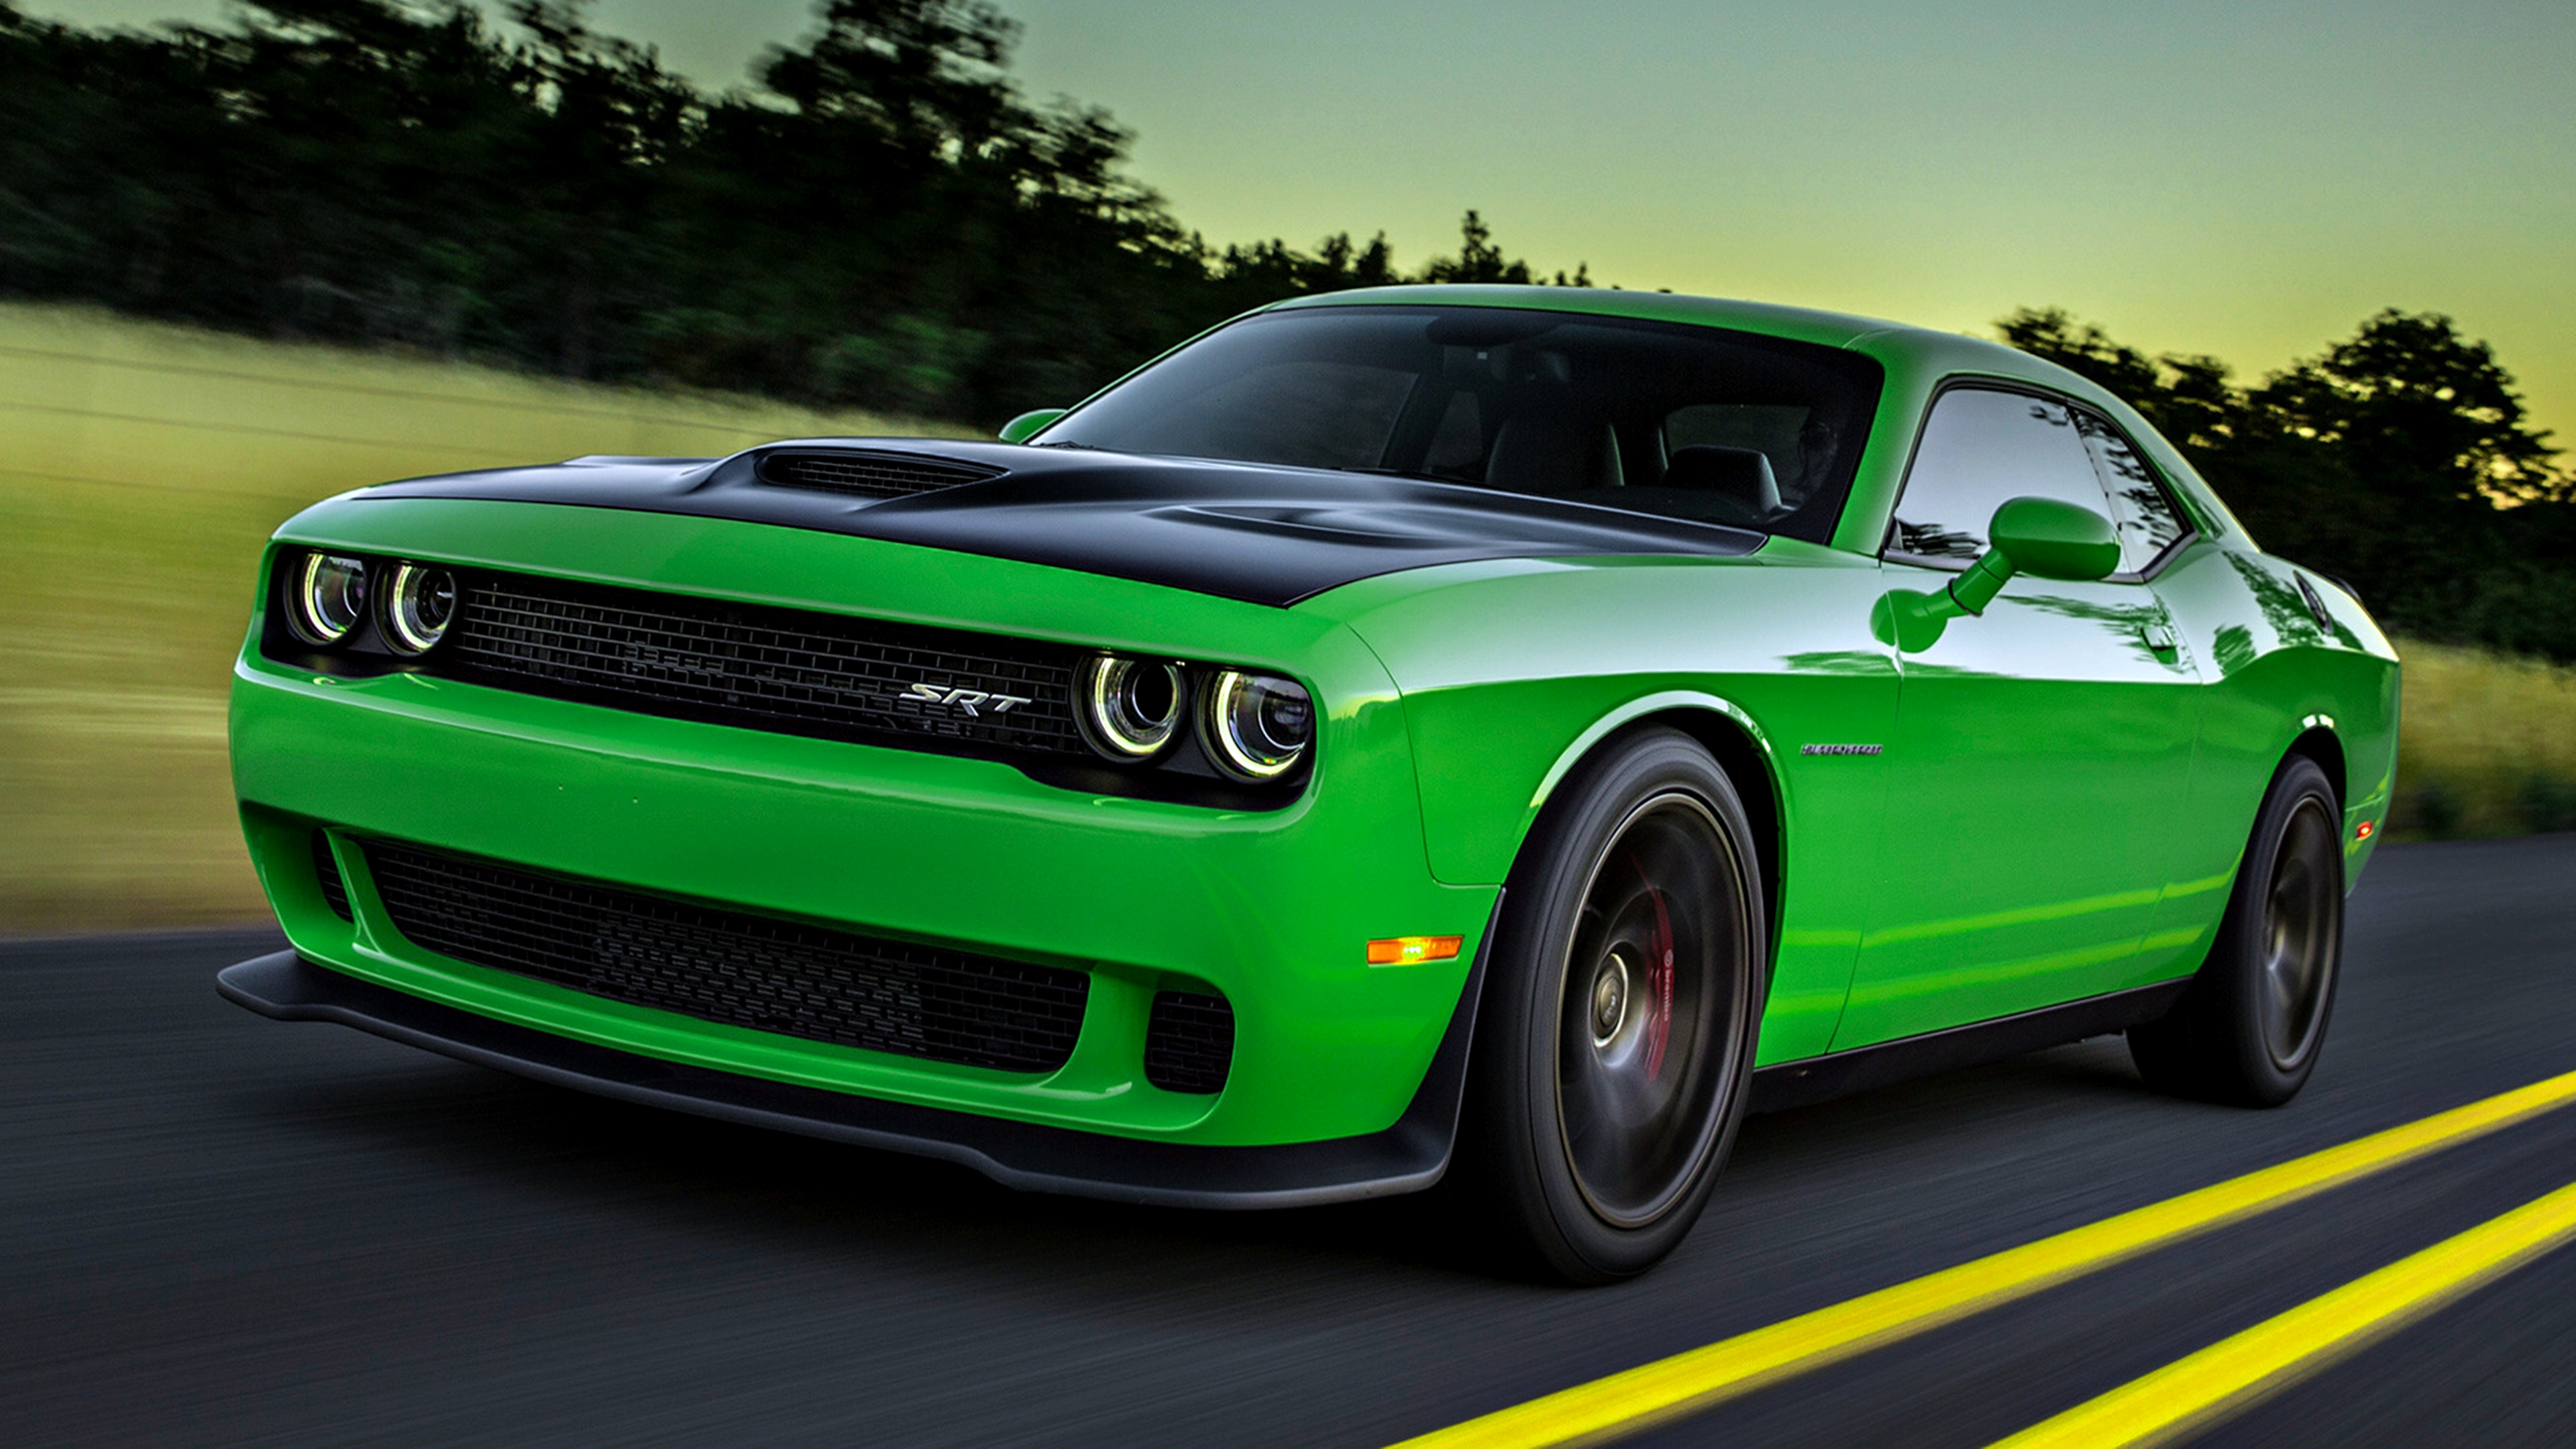 53 dodge challenger srt hd wallpapers | background images